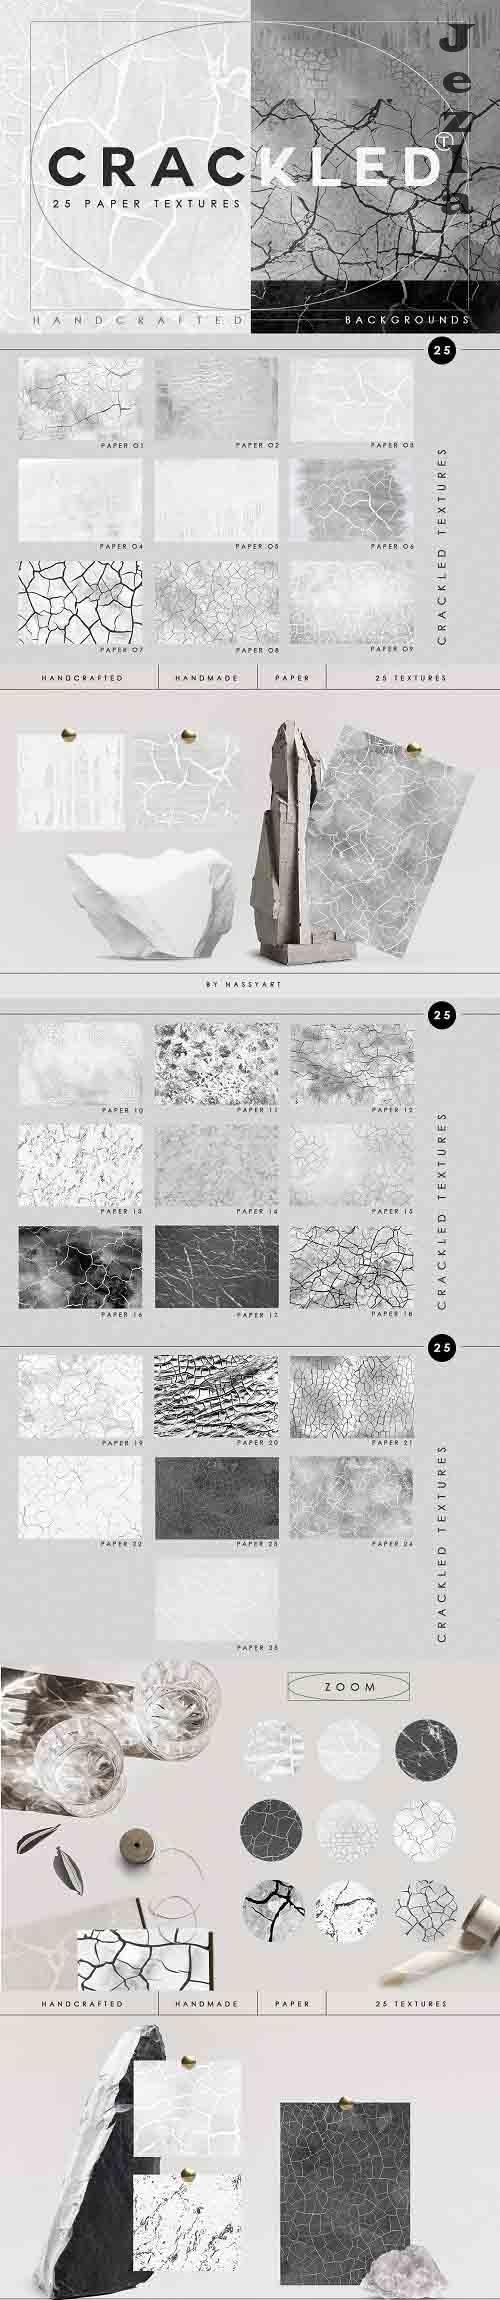 Abstract Crackled Paper Textures - 6189945